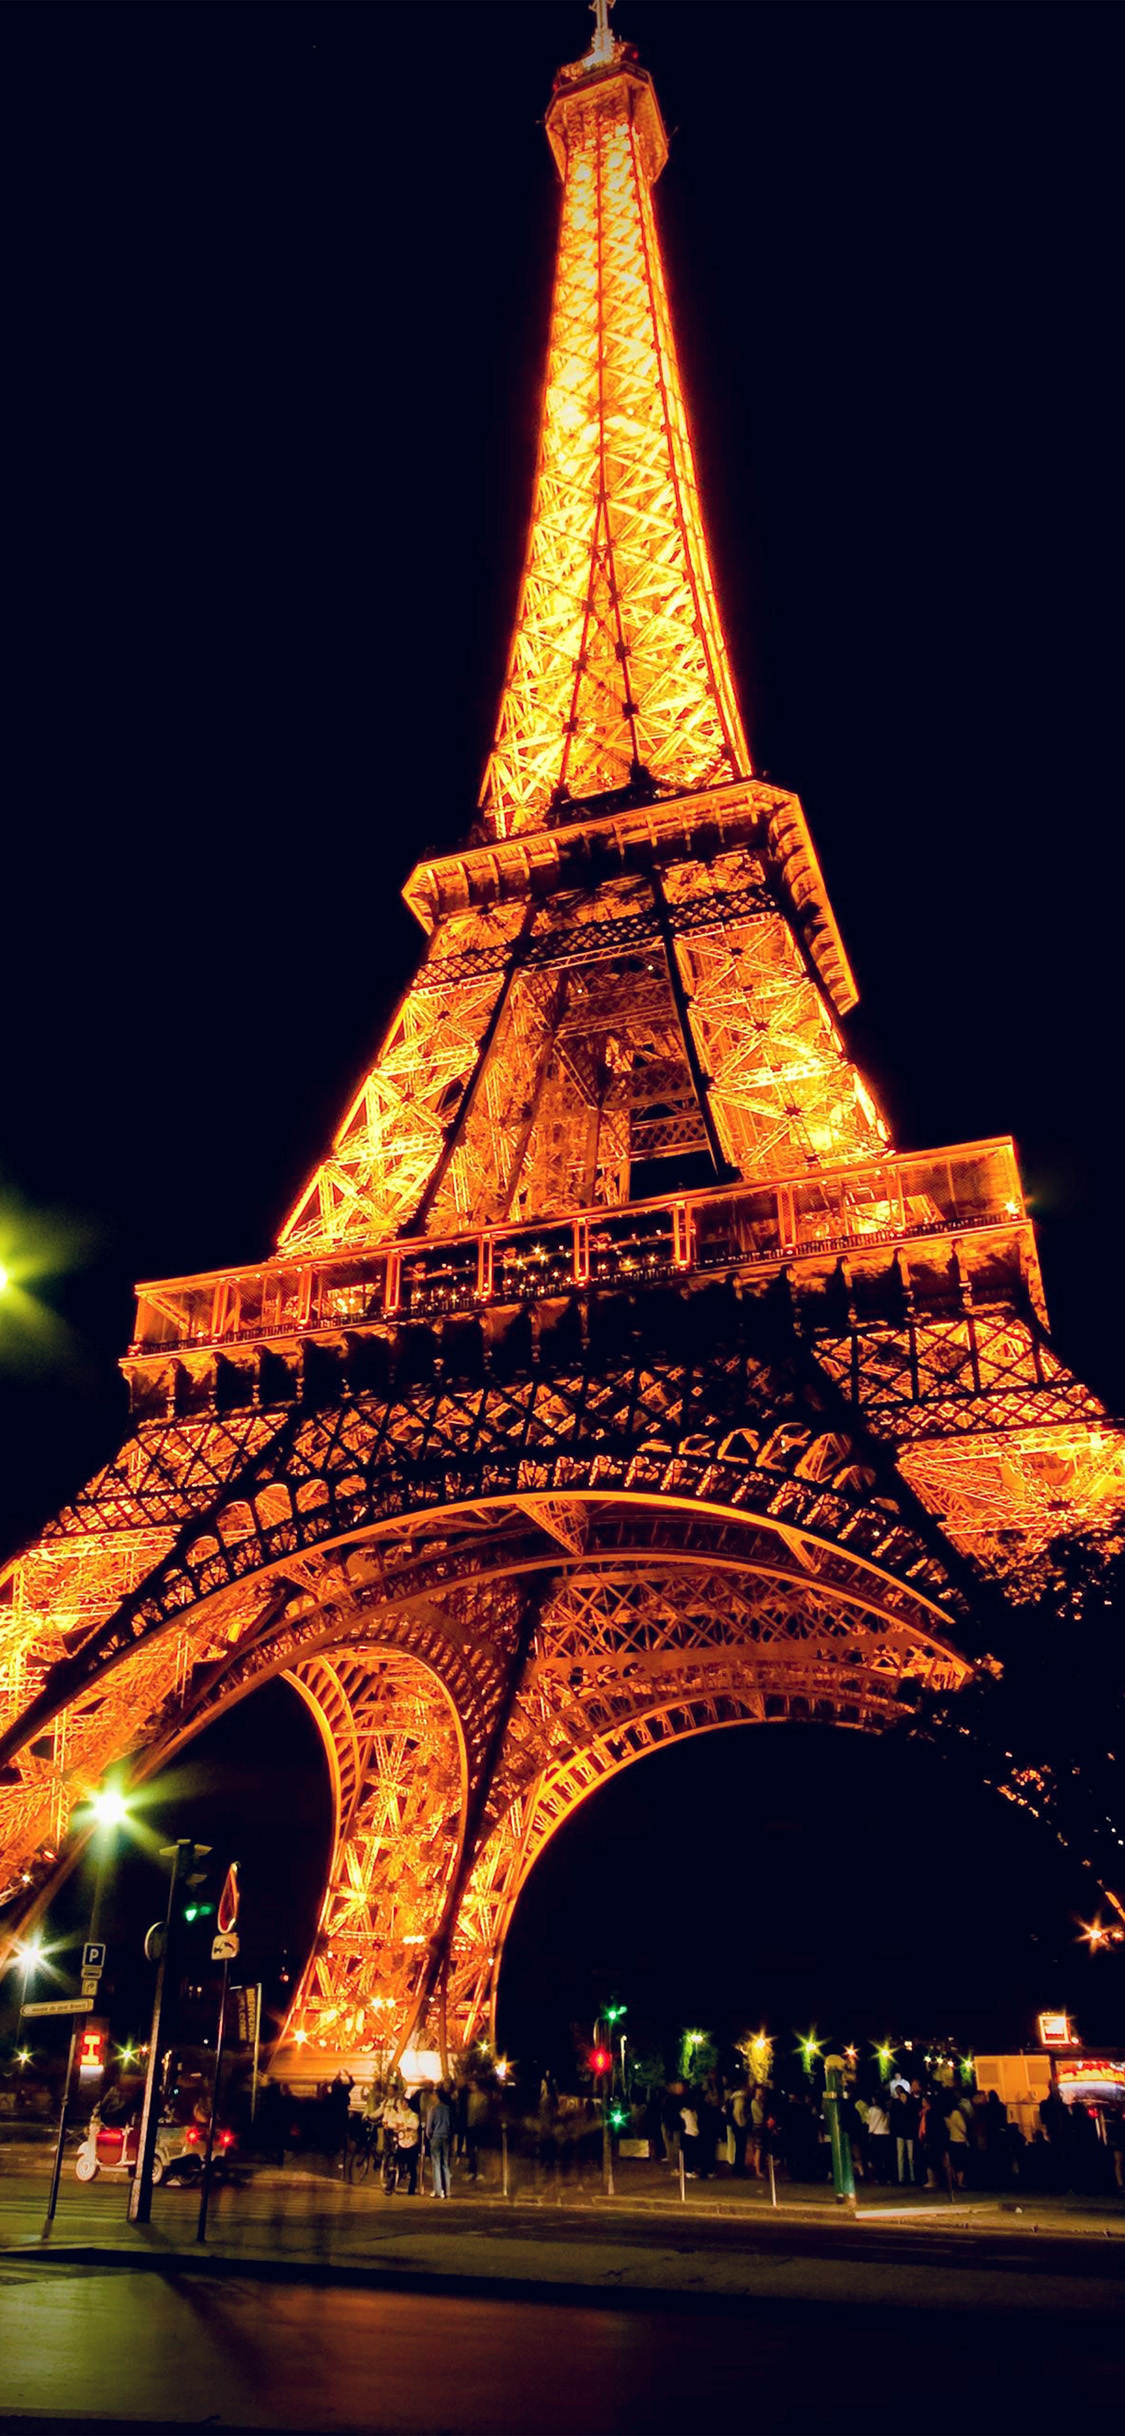 Eiffel Tower Paris Night Art Illustration iPhone wallpaper